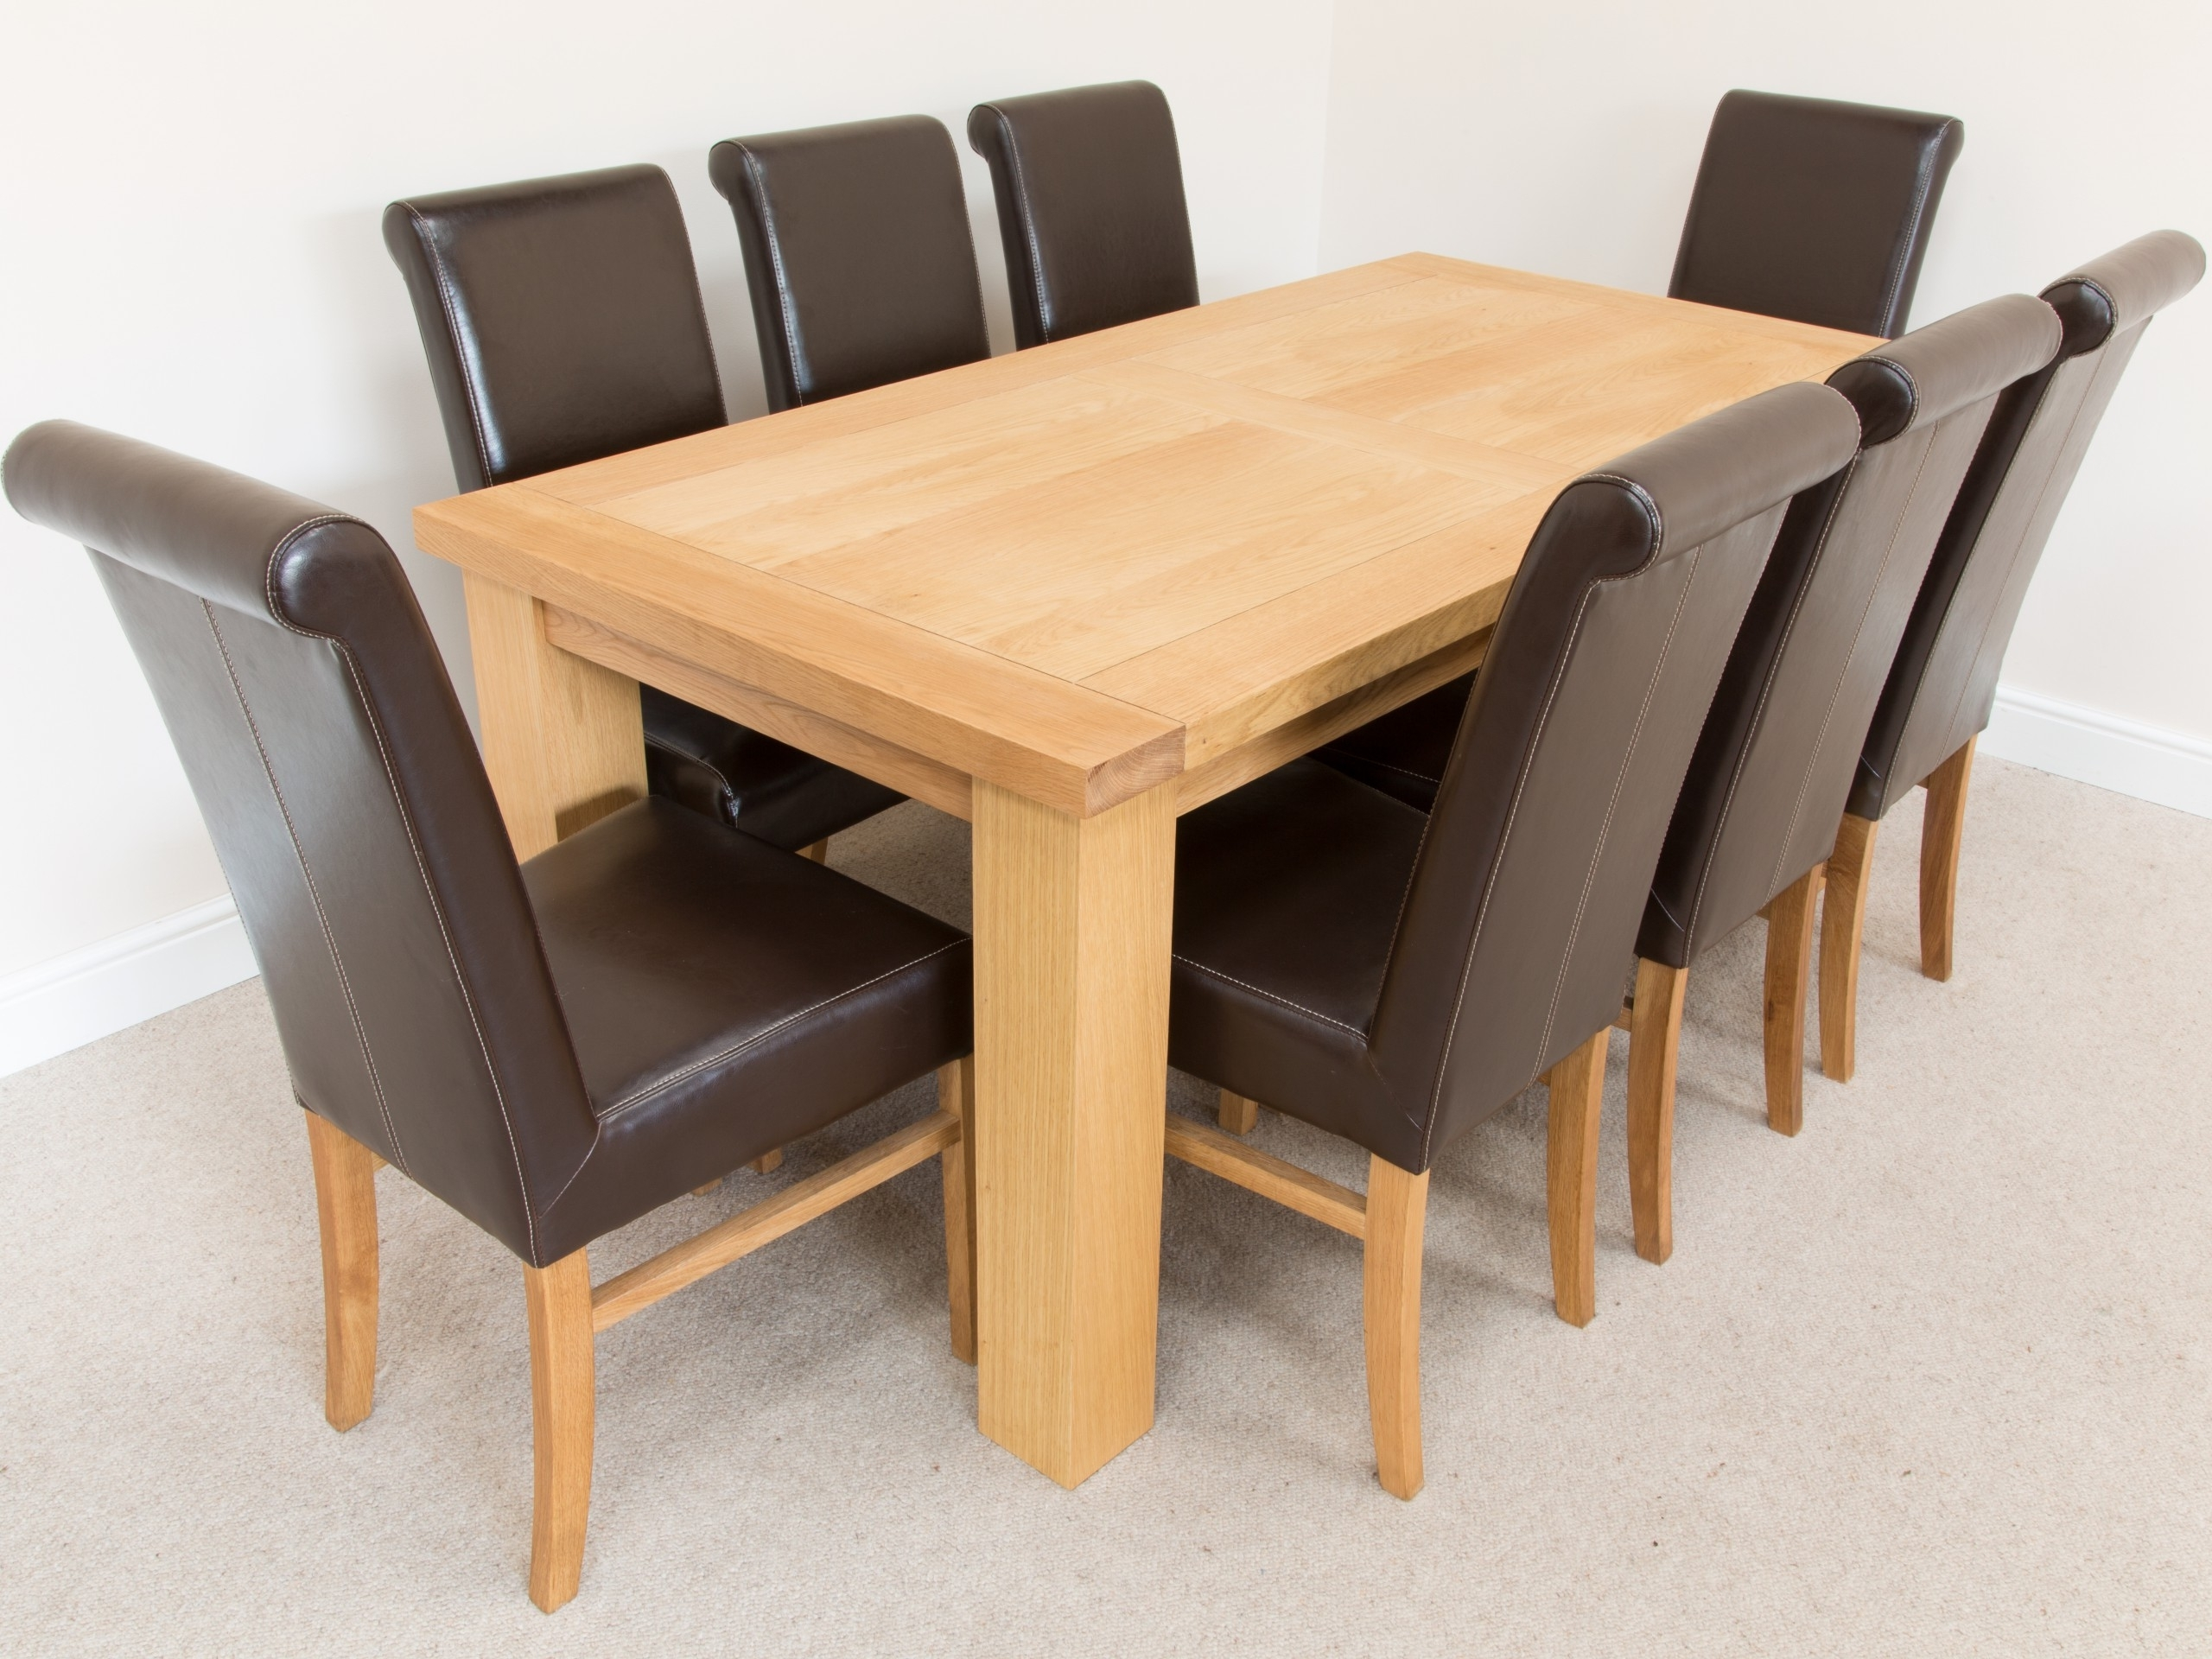 Superb Oak And Leather Dining Room Chairs – Esescatrina Within Popular Oak Dining Tables And Leather Chairs (View 23 of 25)